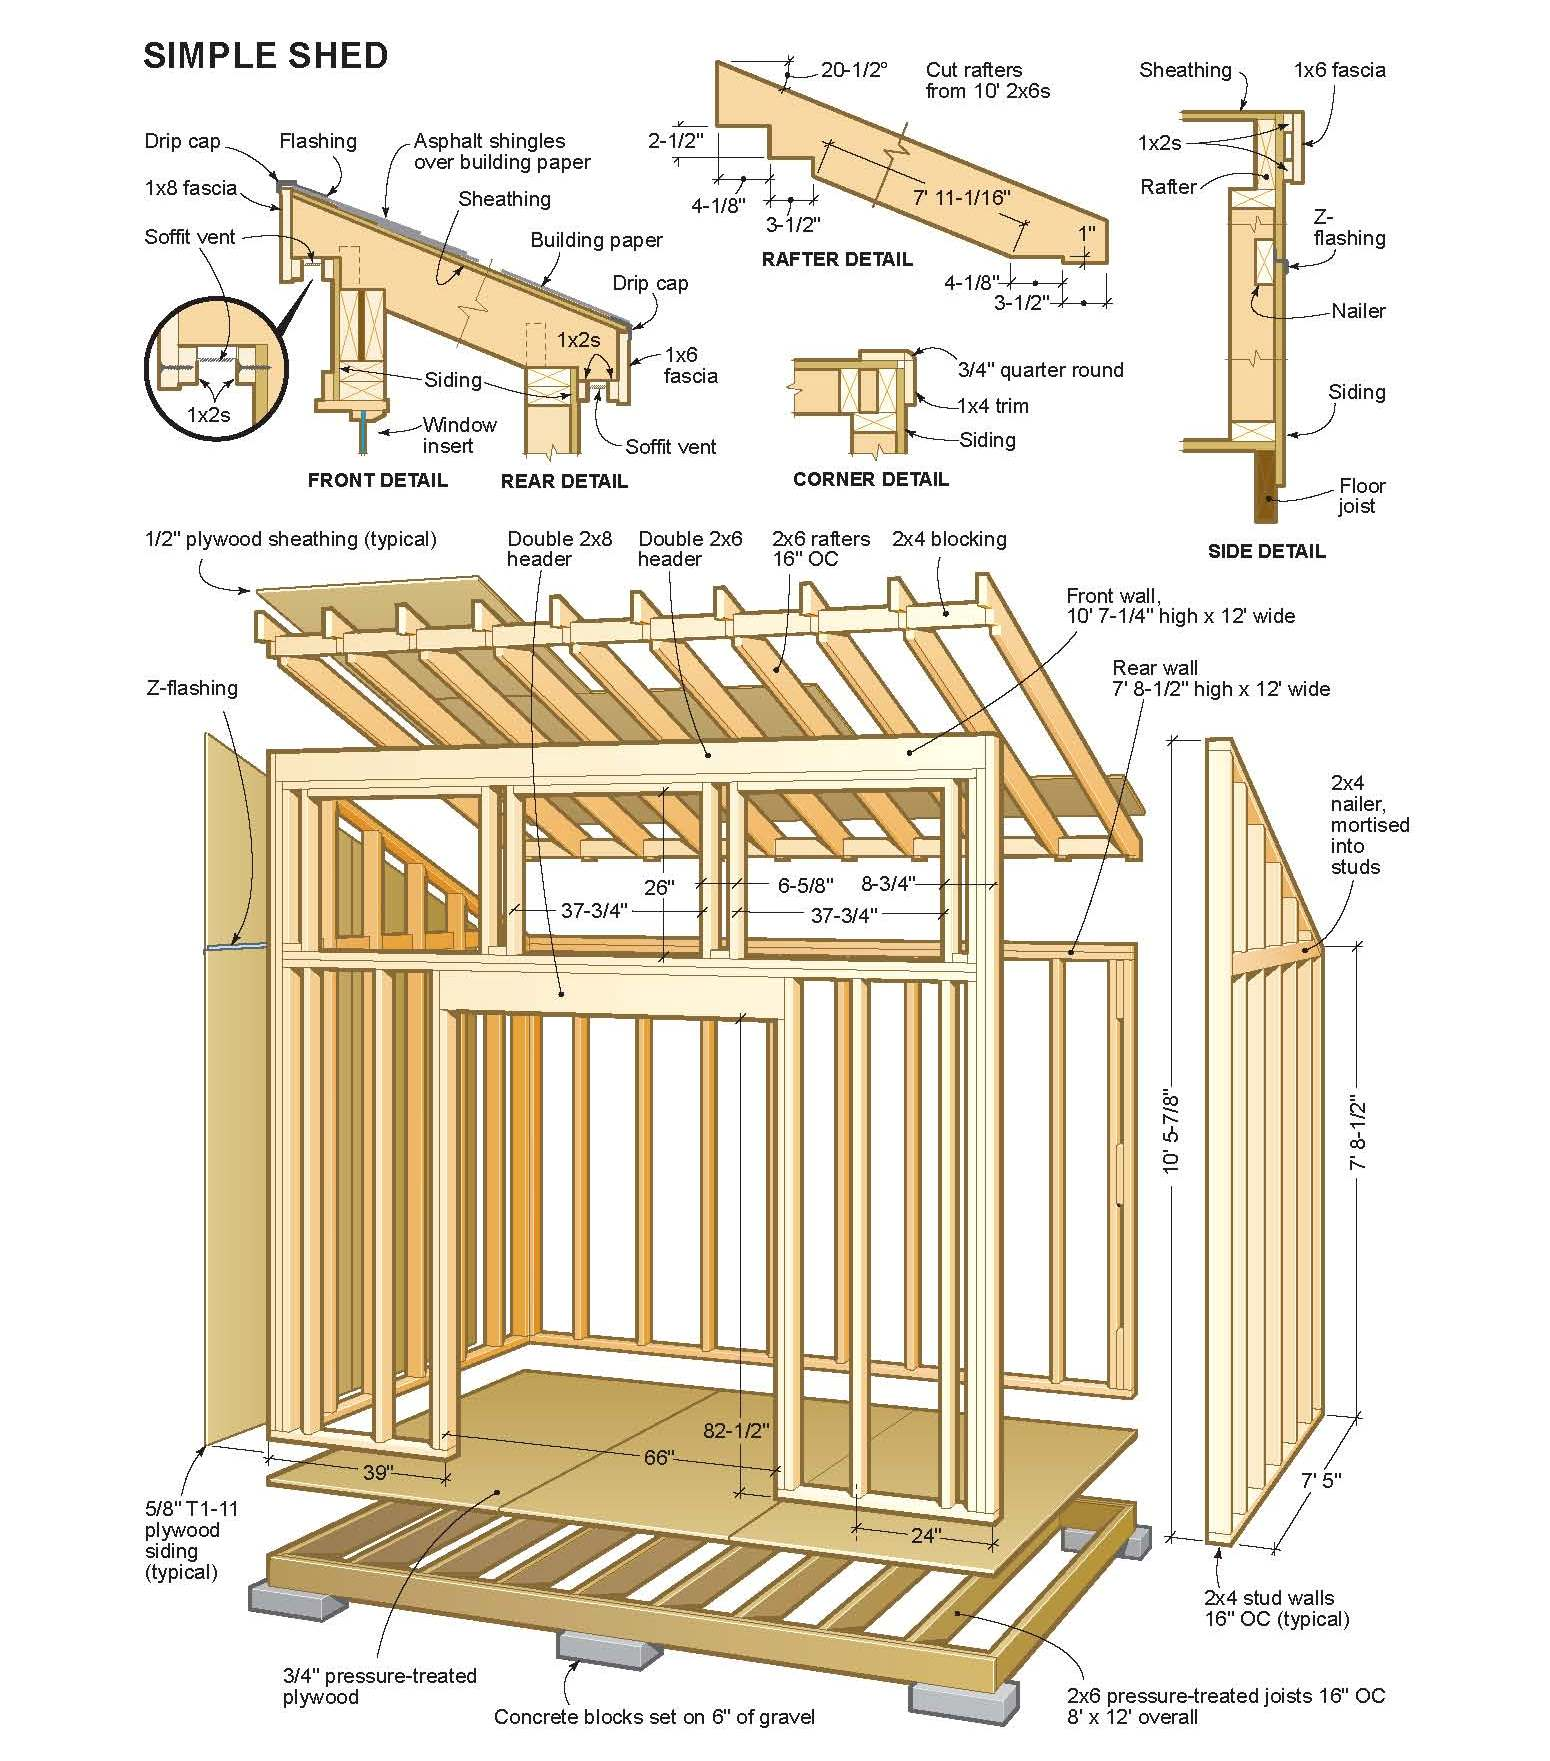 free simple shed plans 09 sony xplod wiring schematic images and schematic design delco,Easy Ke Light Wiring